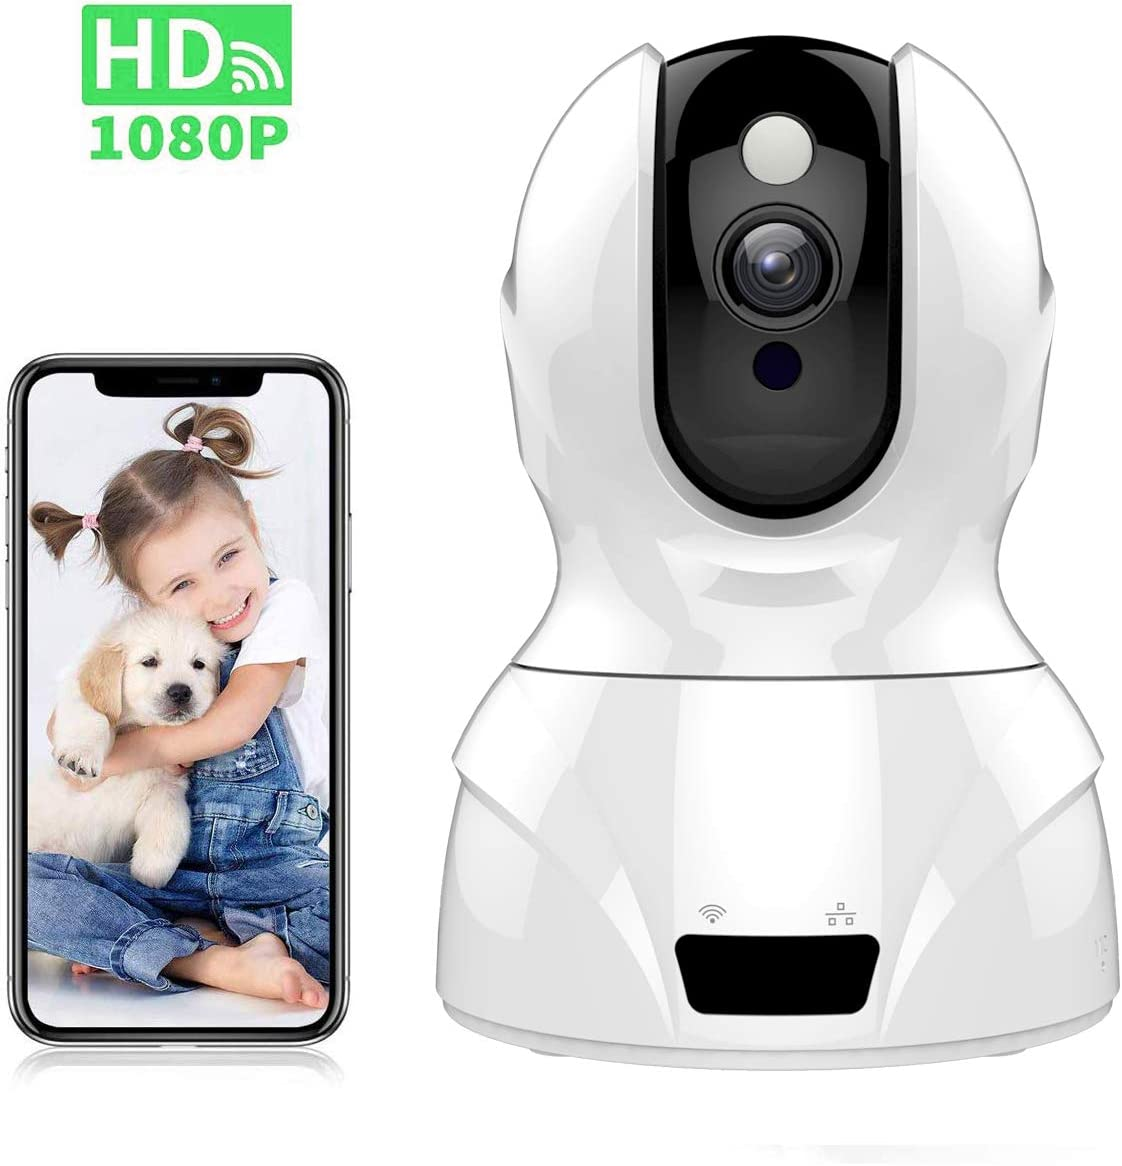 Tovendor 1080P Indoor Video Camera, Smart Home Security Camera with IR Night Vision, 2 Way Talk, Motion Tracking for Pet Dog Baby Elder